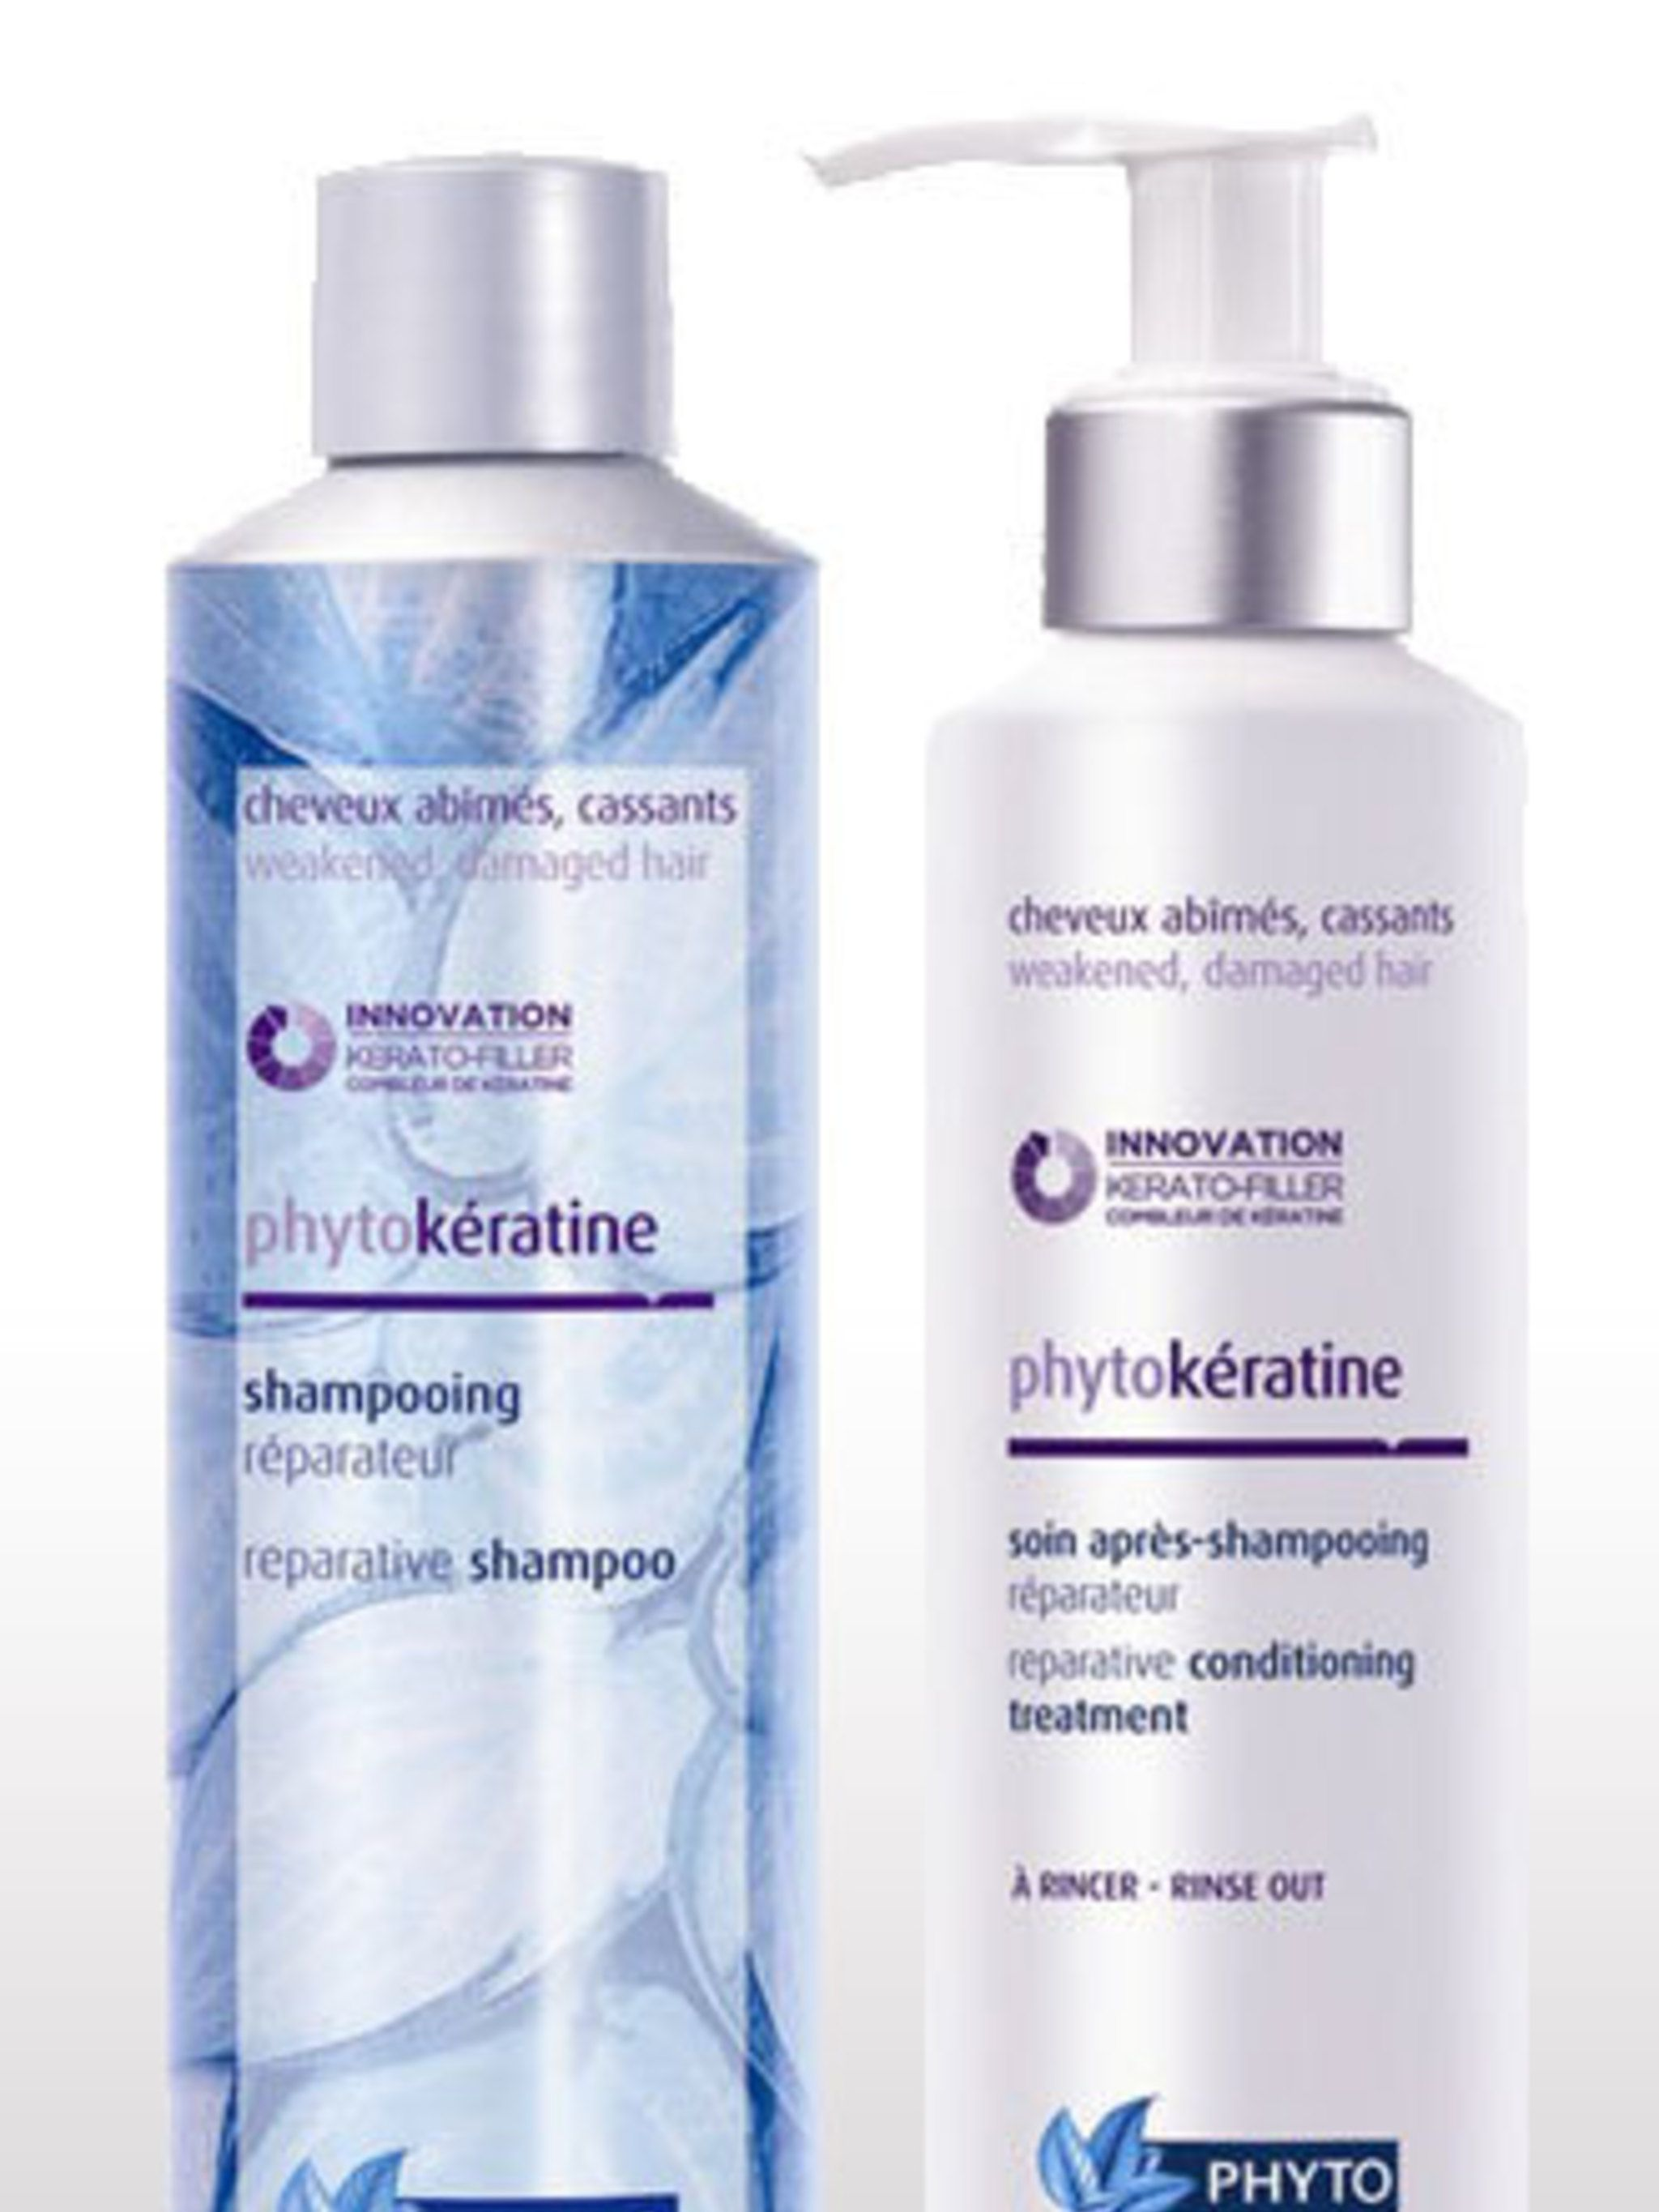 <p><strong>Best for:</strong> Styling Addicts </p><p>Phyto PhtyoKératine Reparative Shampoo, £10.50 and Conditioner, £13.50 contain a botanical keratin that is similar to the protein that makes up our own hair - in effect it plugs the gaps in the hair fib